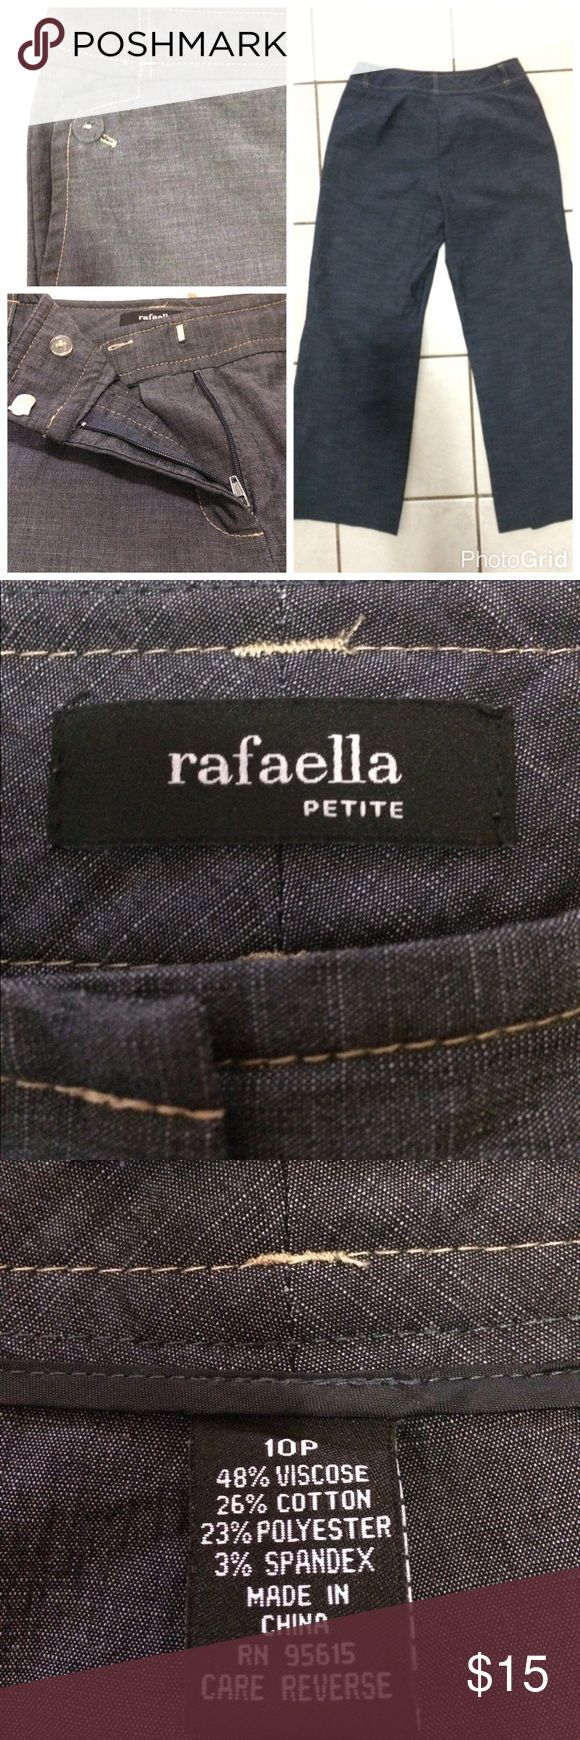 Rafaela Patite casual pant 10P Lovely like new with no tags, never worn, casual jean print pant. Wide leg. Thin with great stretch material! Rafaella Pants Wide Leg